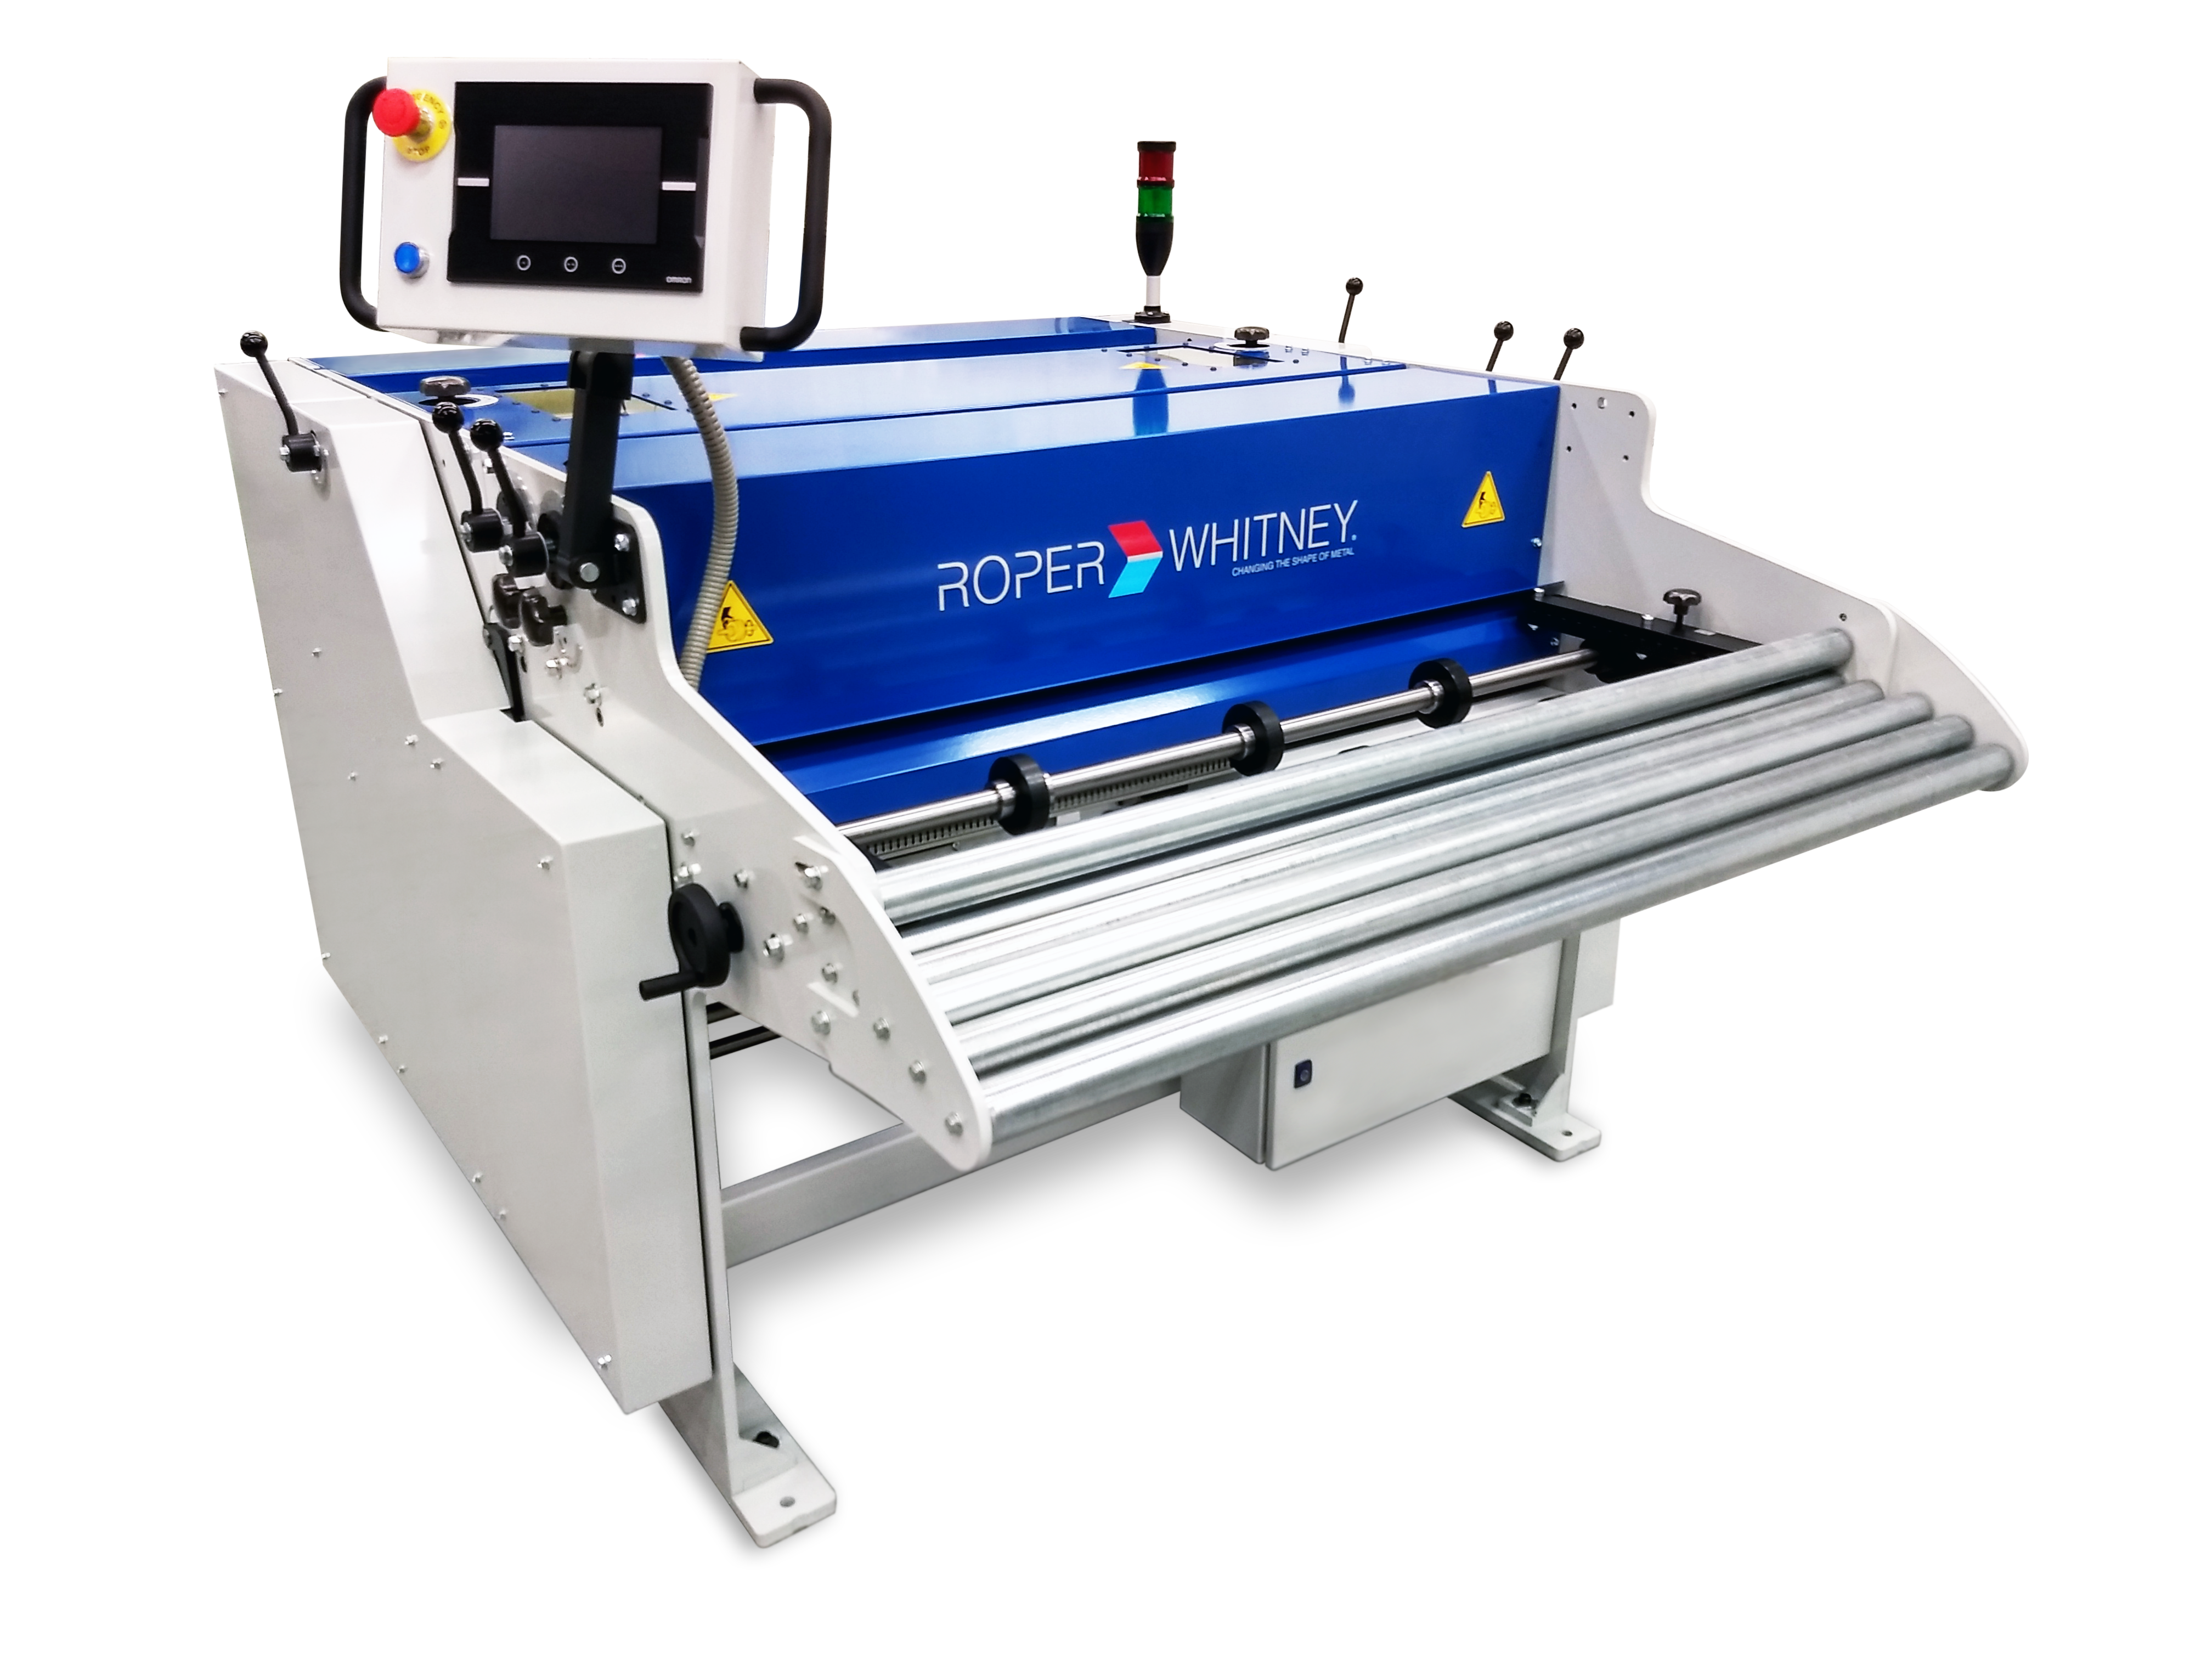 Roper Whitney - Sheet Metal Fabrication Equipment